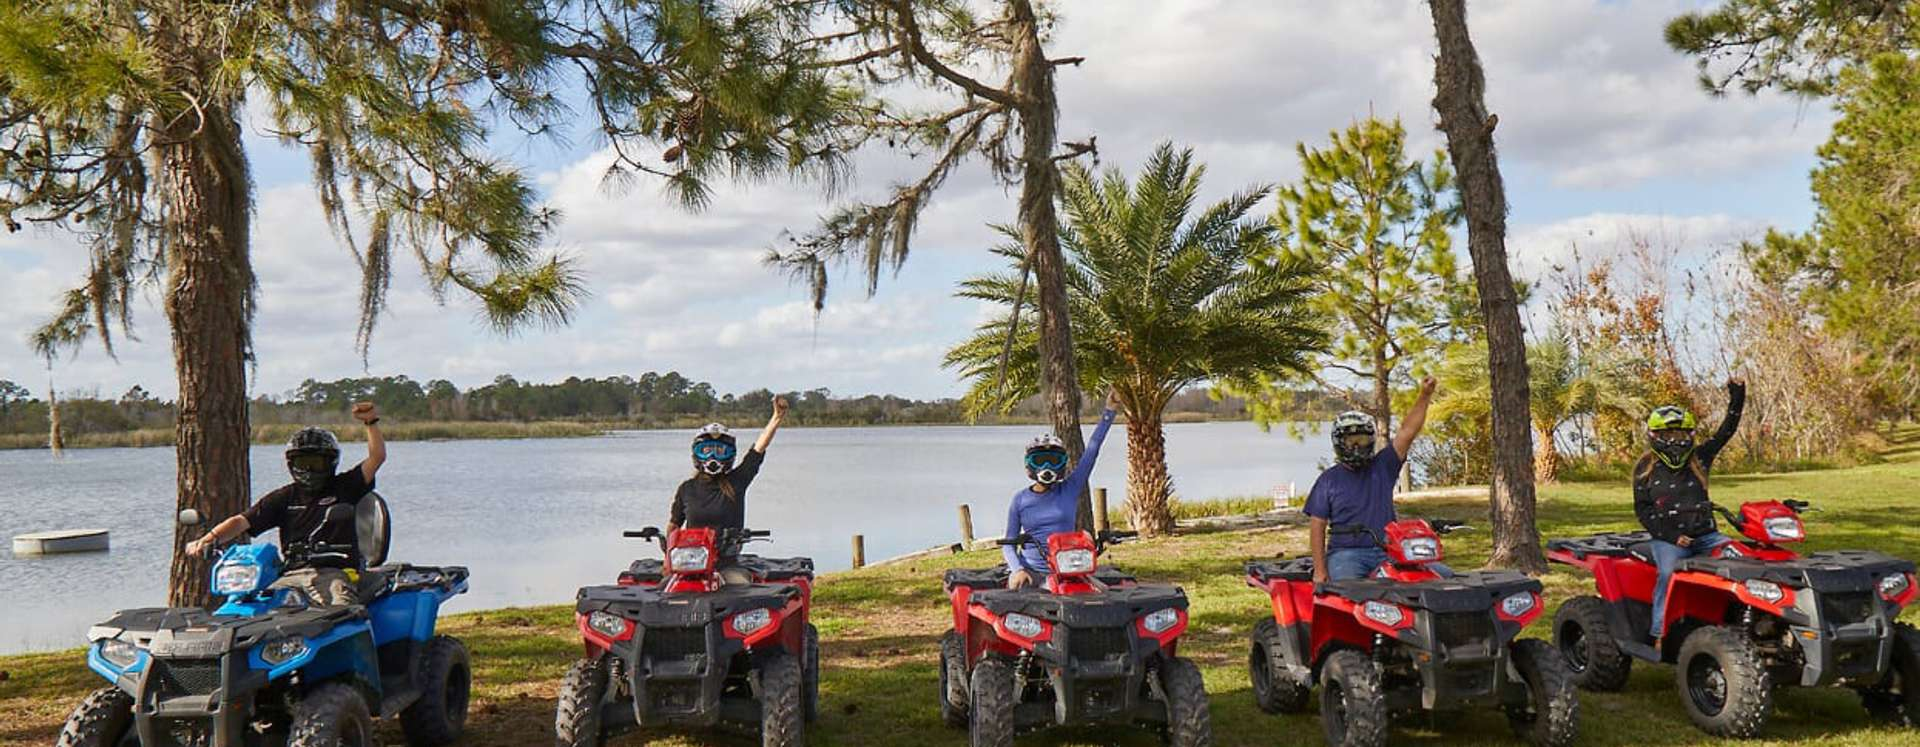 Group of five riders with helmets on ATVs, underneath the shade of pine trees with a lake in the background.